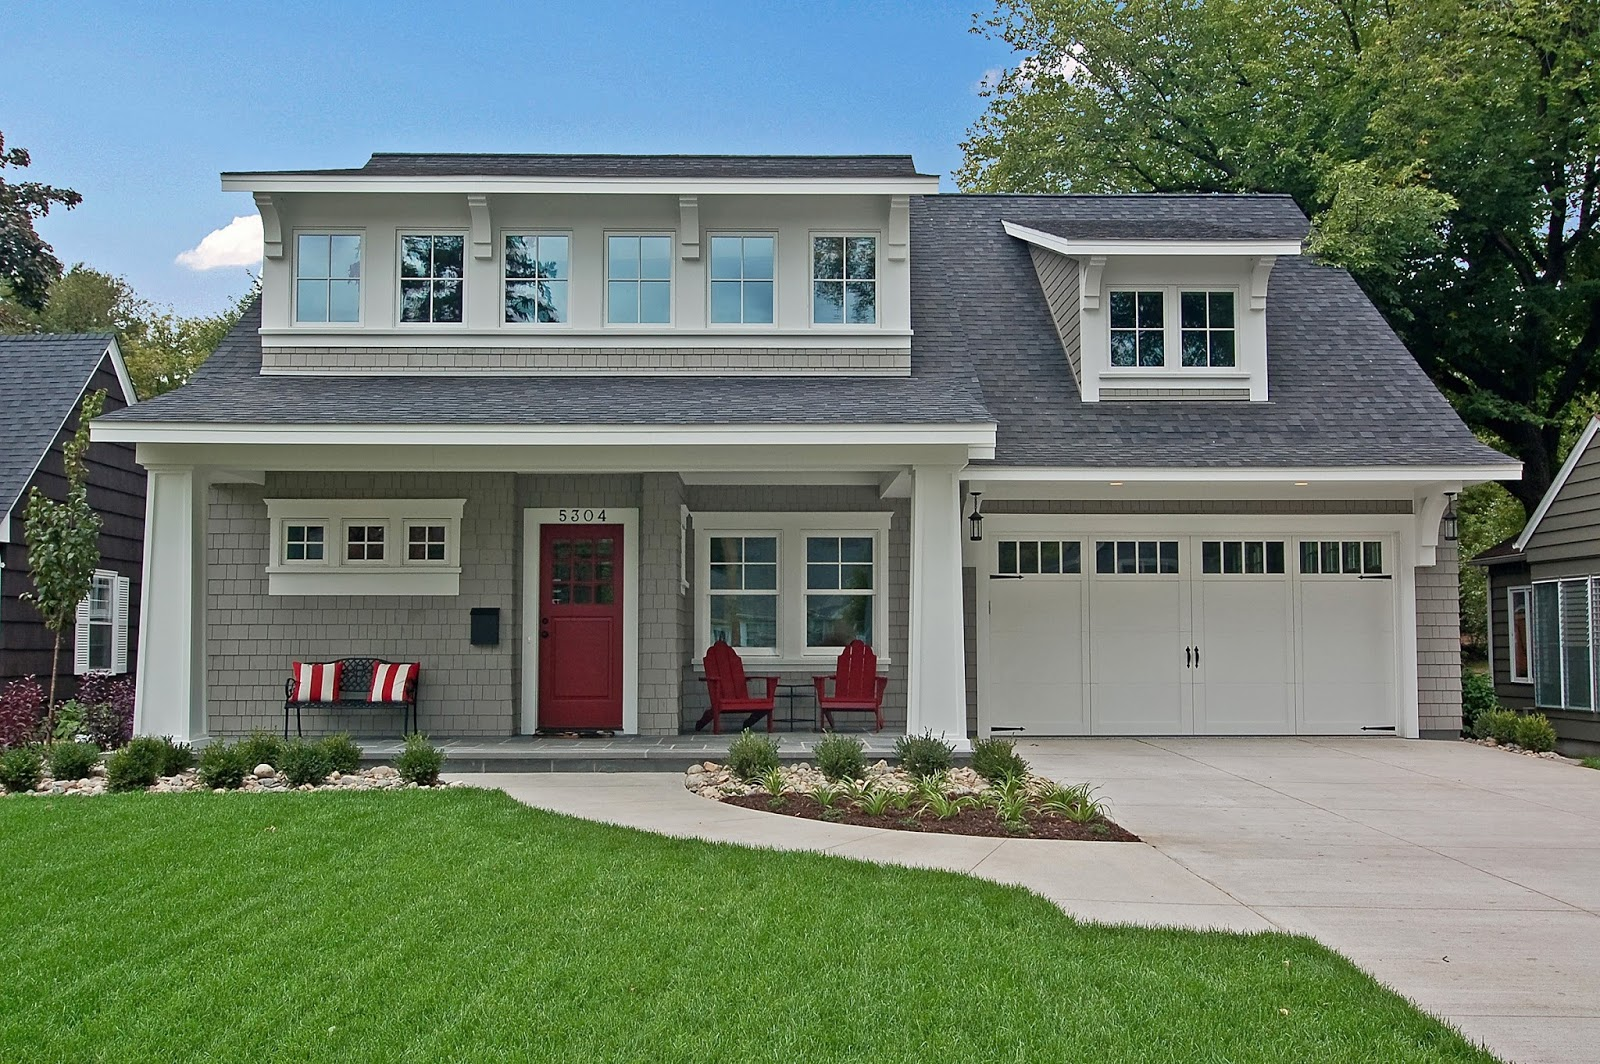 A Modern Bungalow At Great Neighborhood Homes    Love That Red Door!